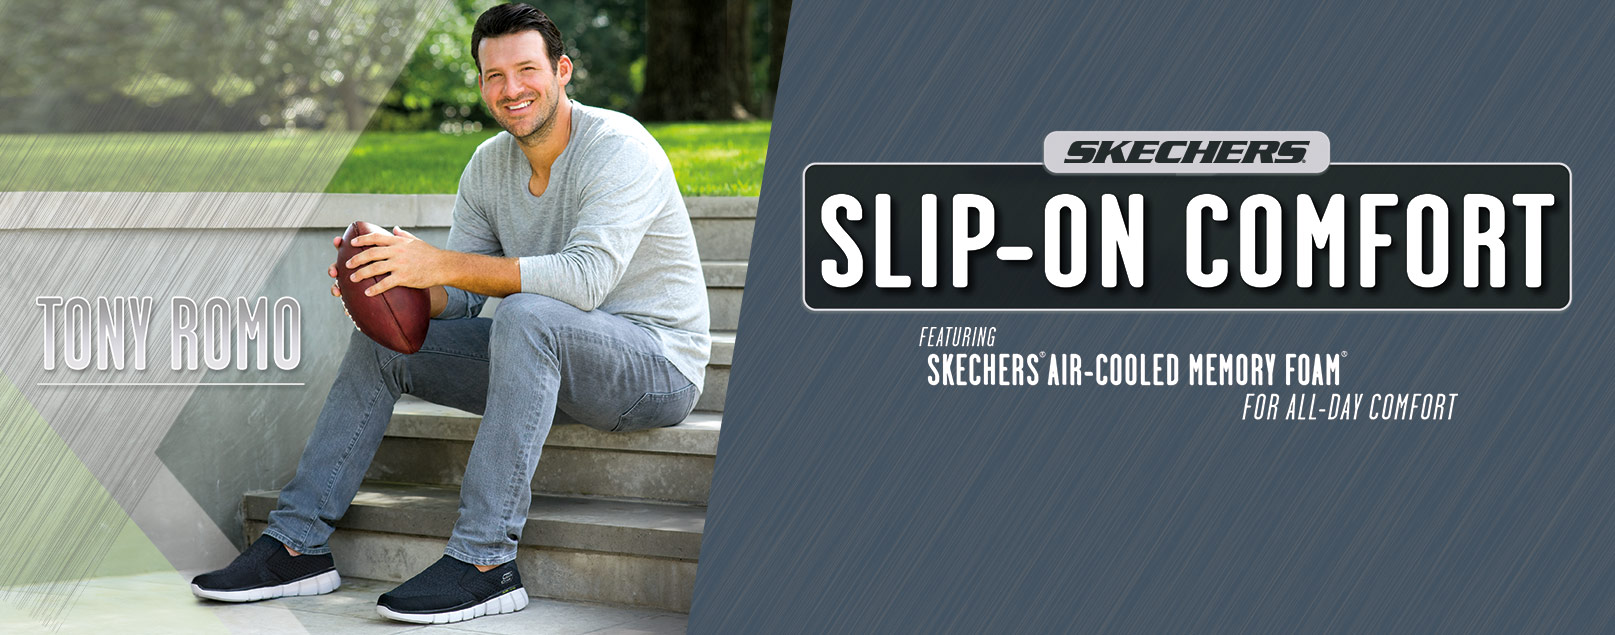 Skechers Slip-On Comfort